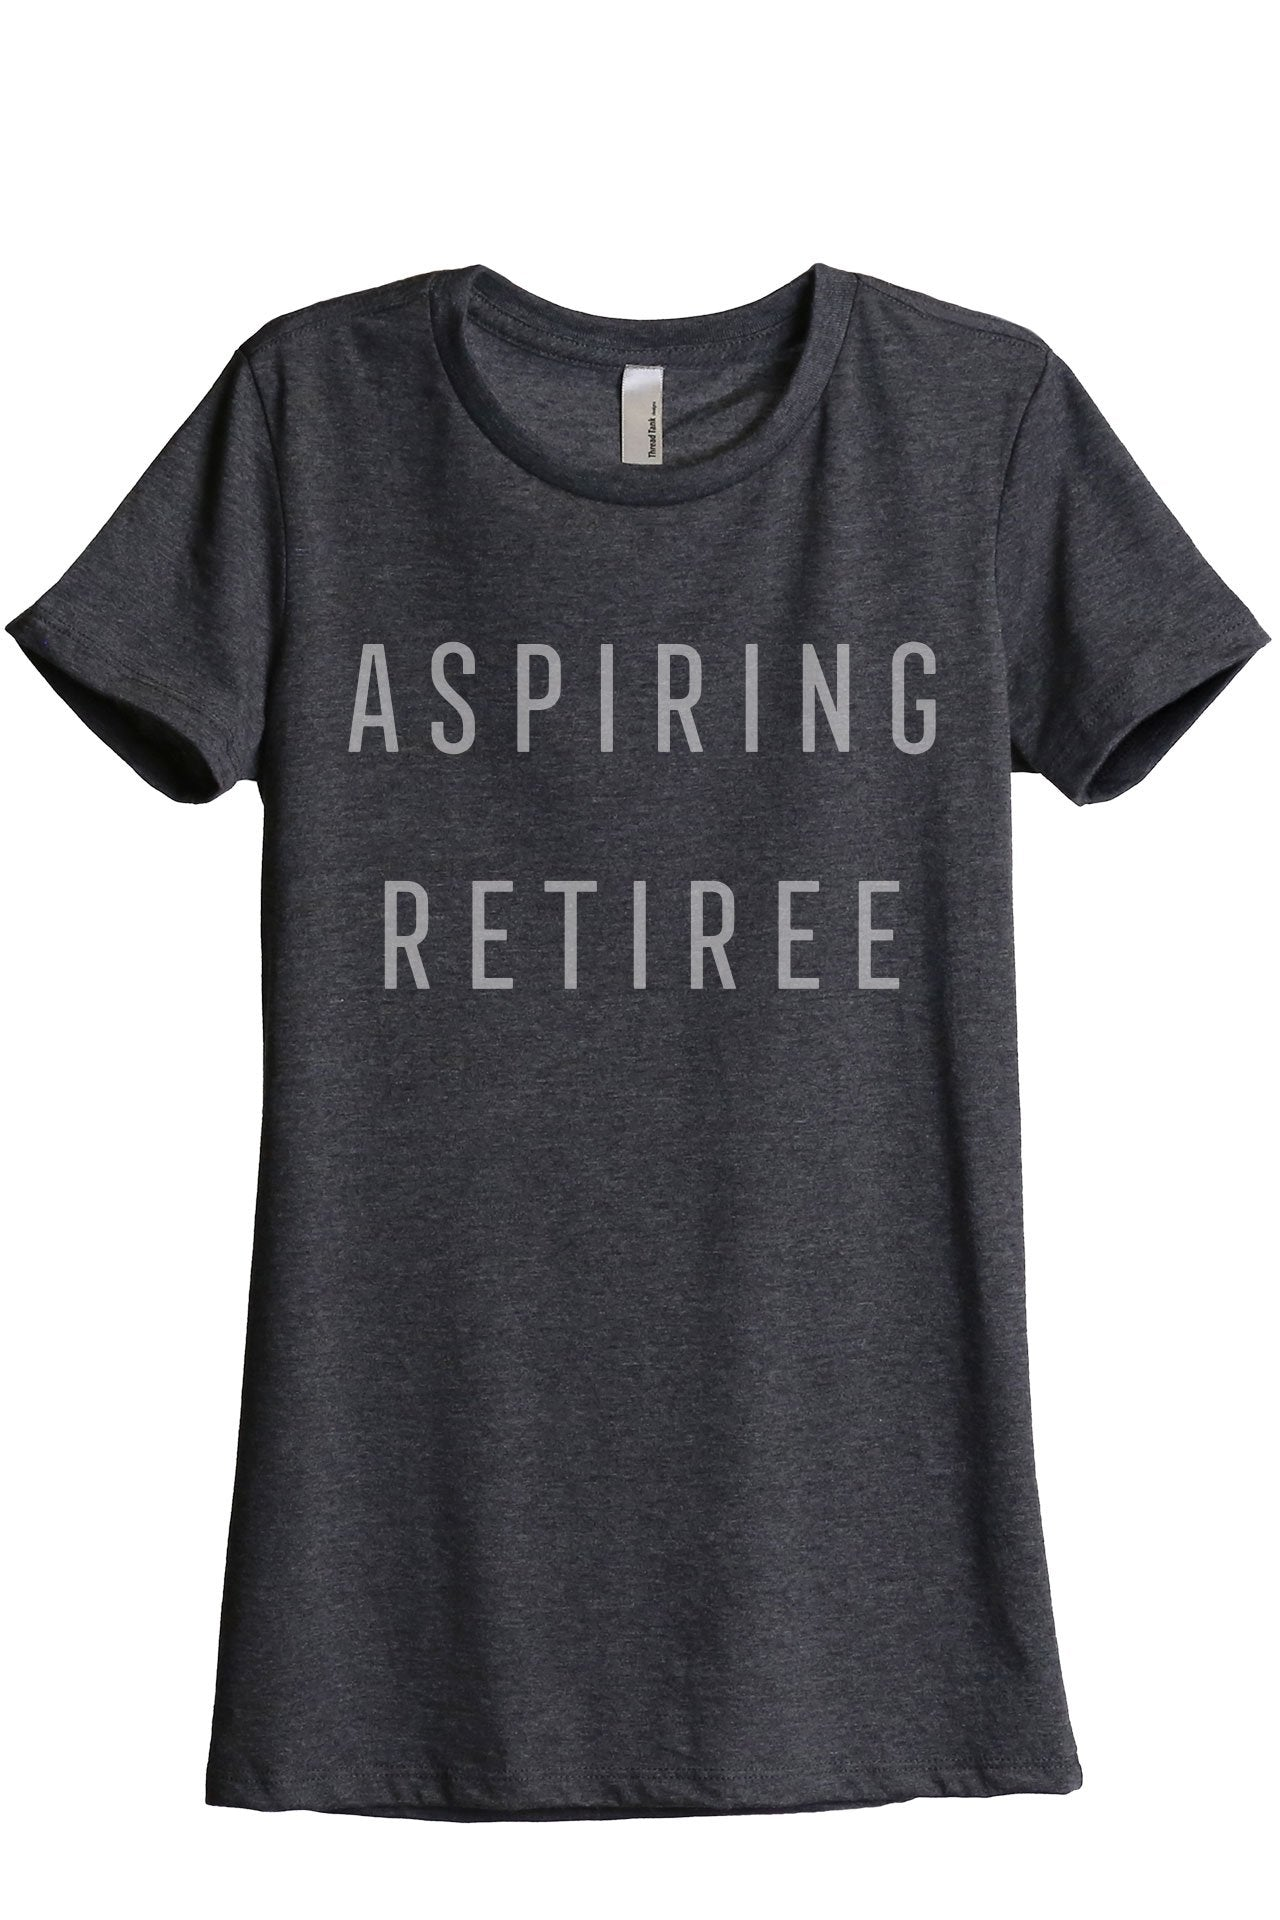 Aspiring Retiree - Thread Tank | Stories You Can Wear | T-Shirts, Tank Tops and Sweatshirts